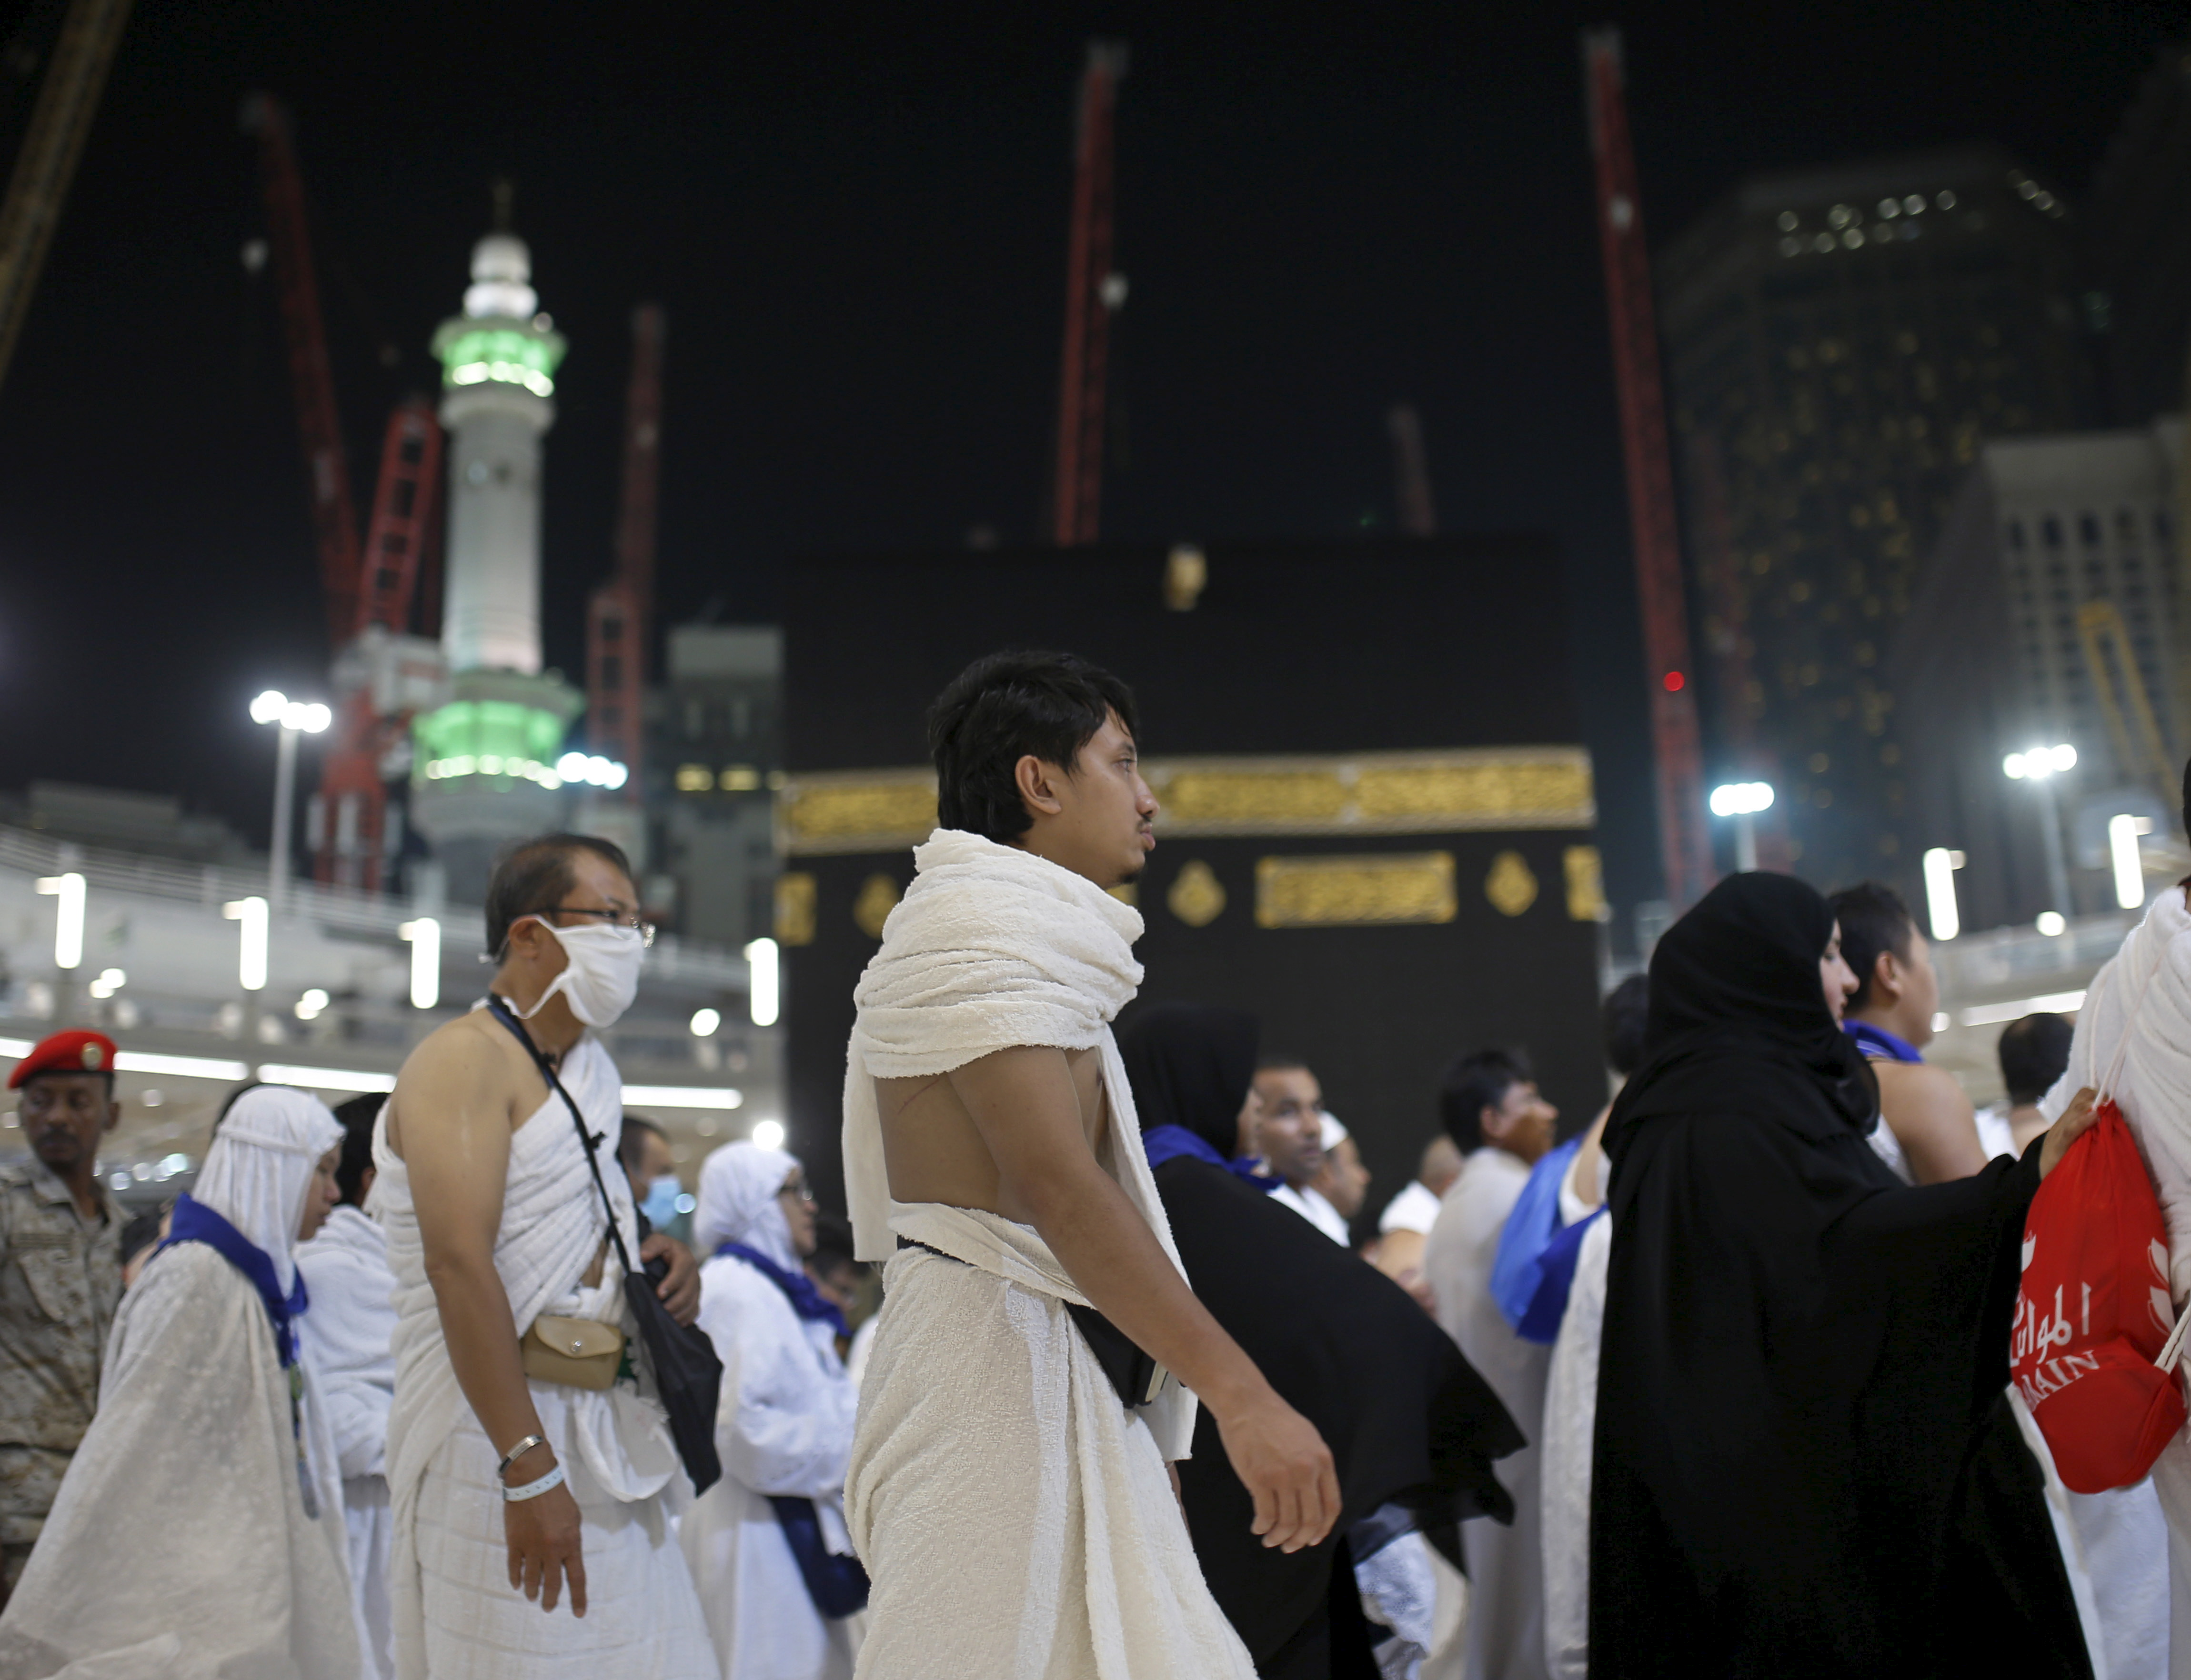 Muslim pilgrims pray around the holy Kaaba at the Grand Mosque on the first day of Eid al-Adha during the annual hajj pilgrimage in Mecca, Saudi Arabia, on Sept. 24. Photo by Ahmad Masood/Reuters